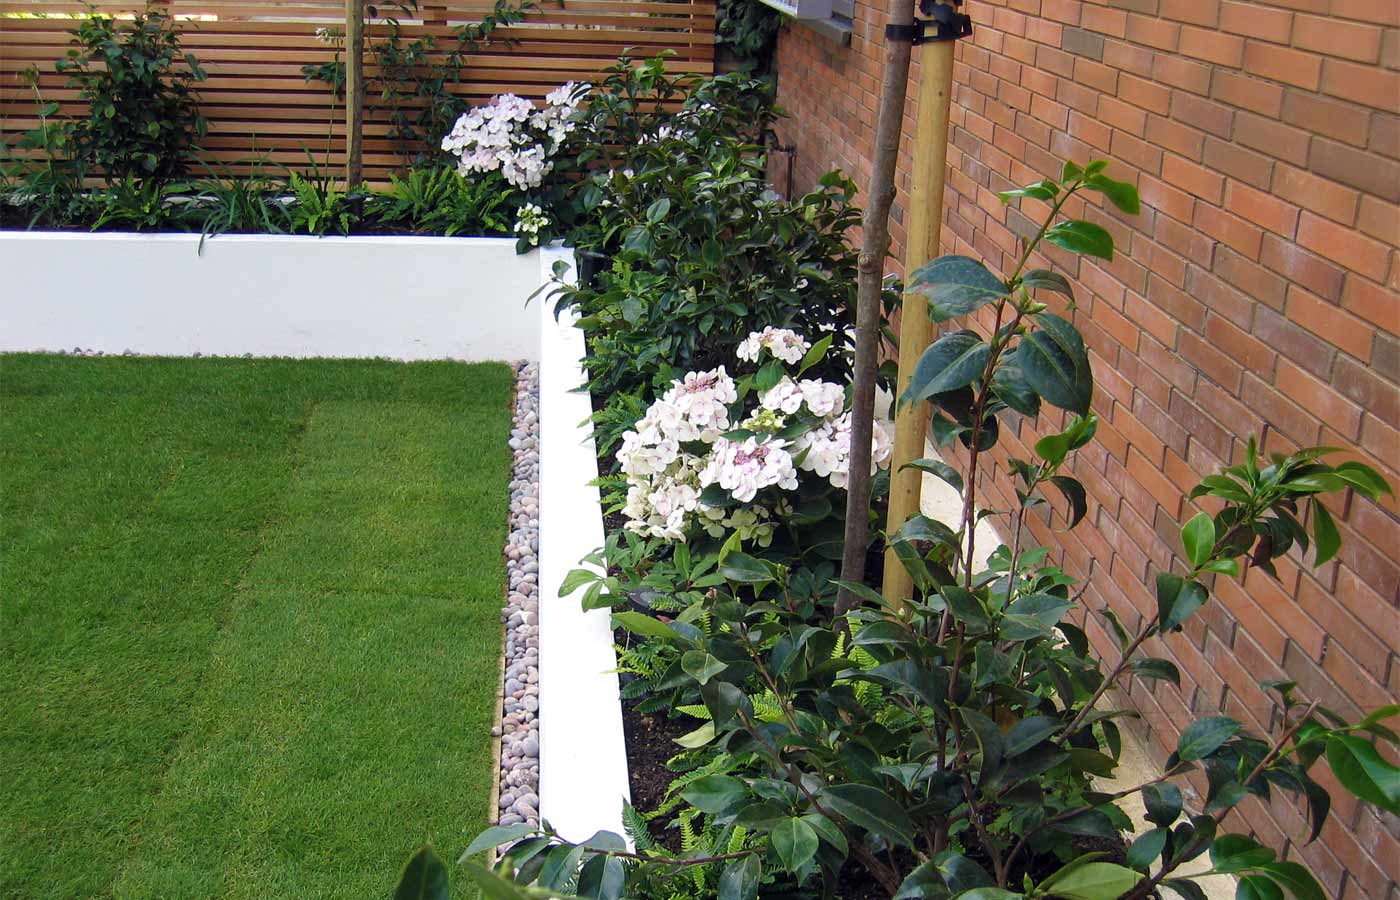 Contemporary garden design london architectural garden for Contemporary garden designs and ideas